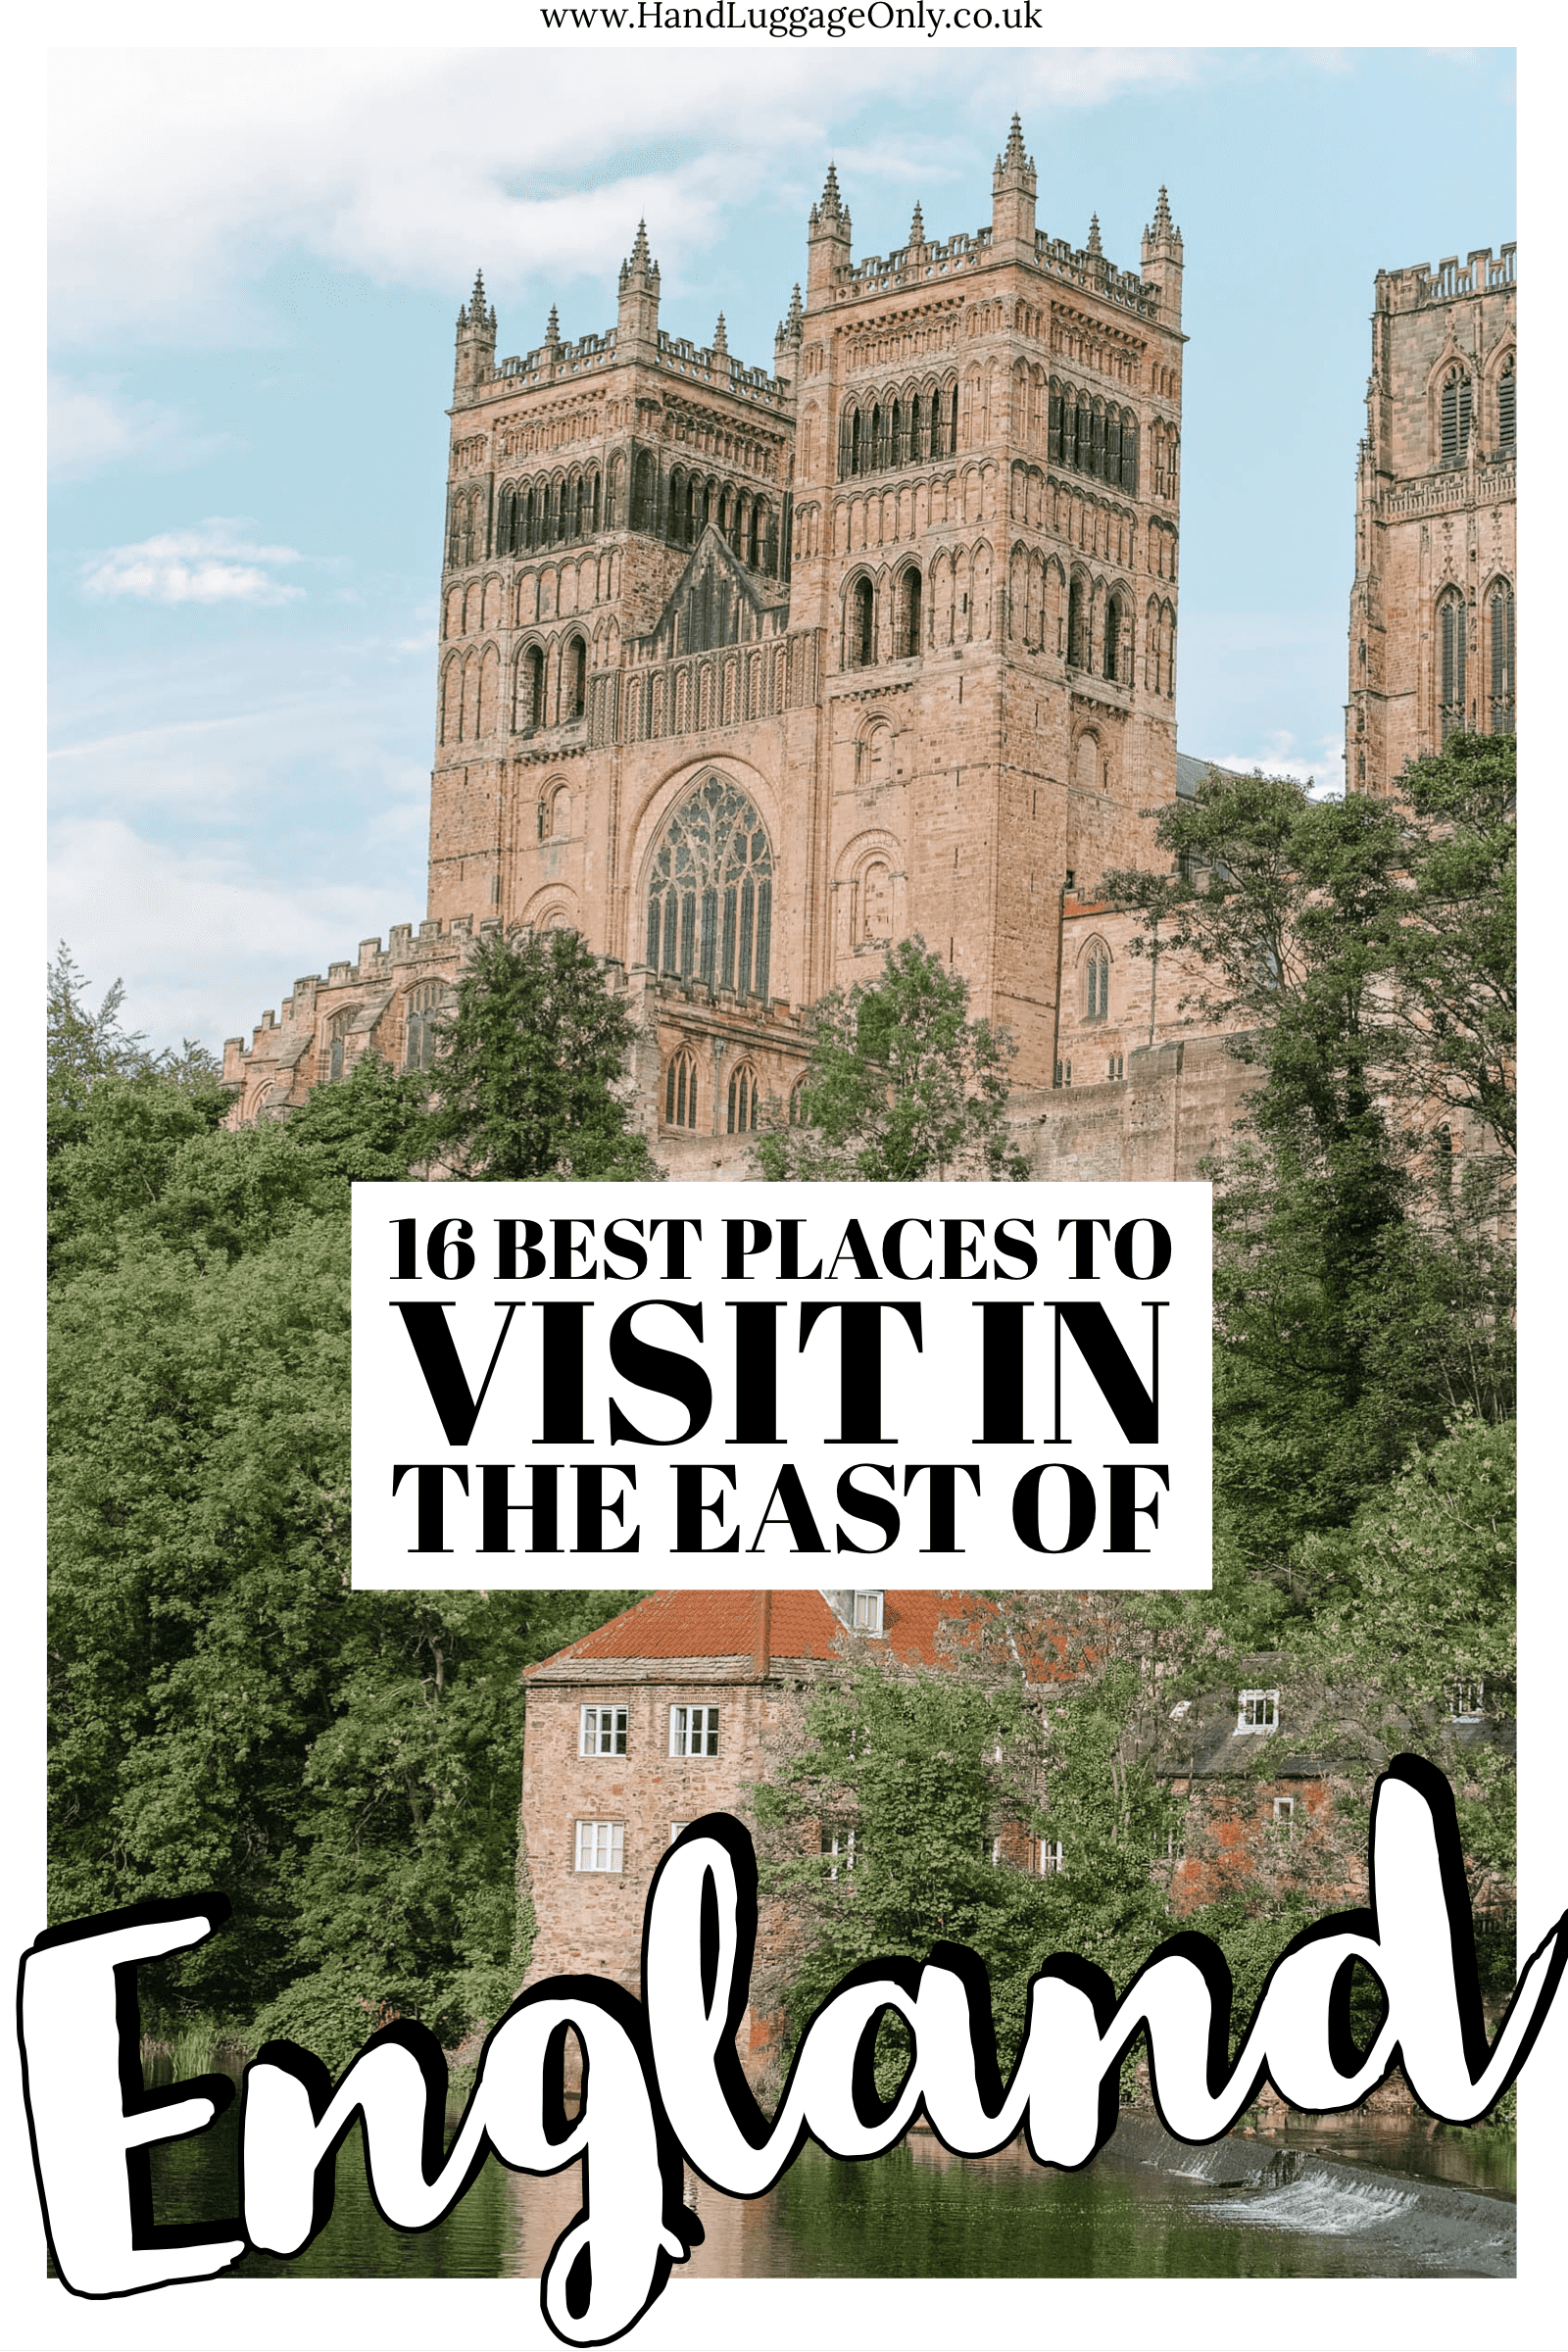 16 Best Places In The East of England To Visit (1)